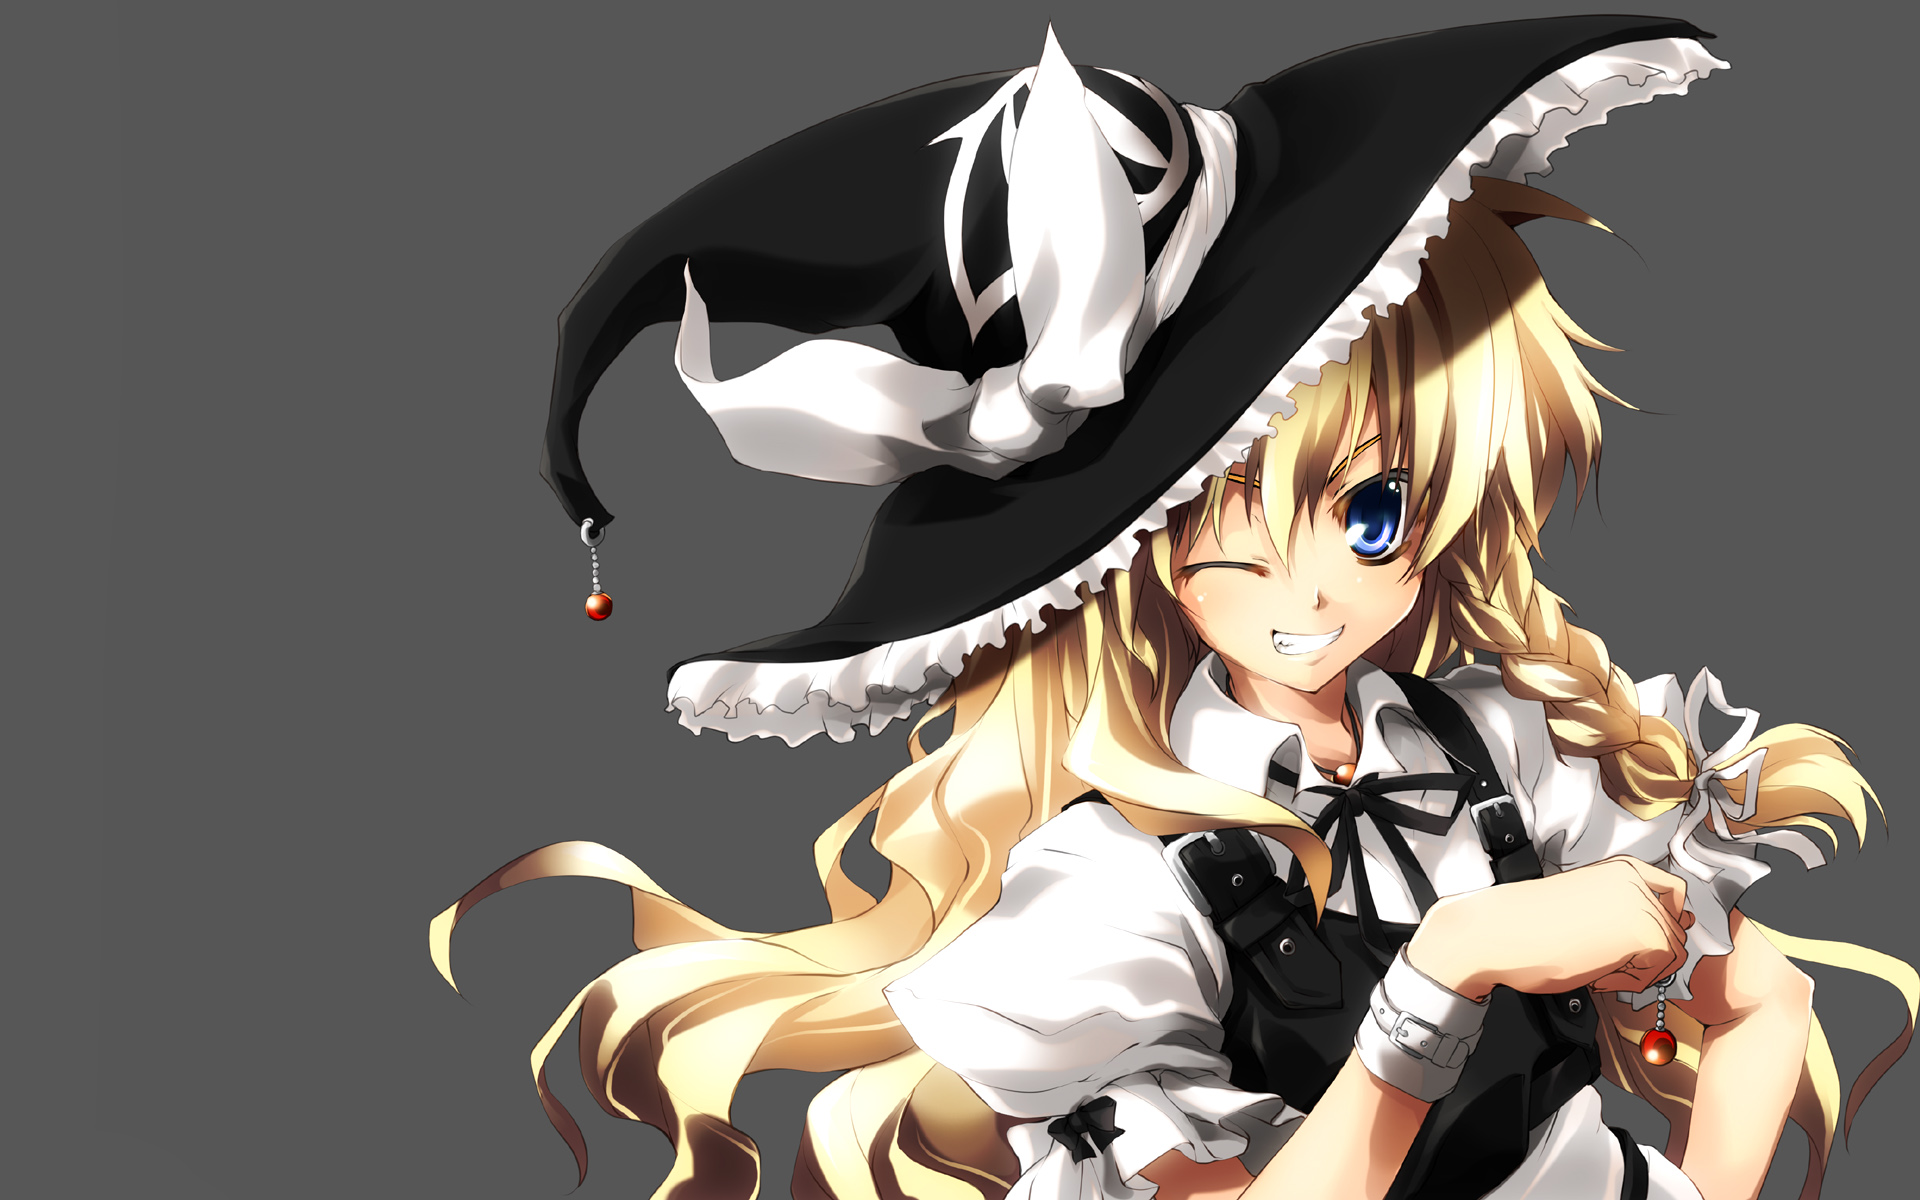 Kirisame Marisa wallpaper - 451330